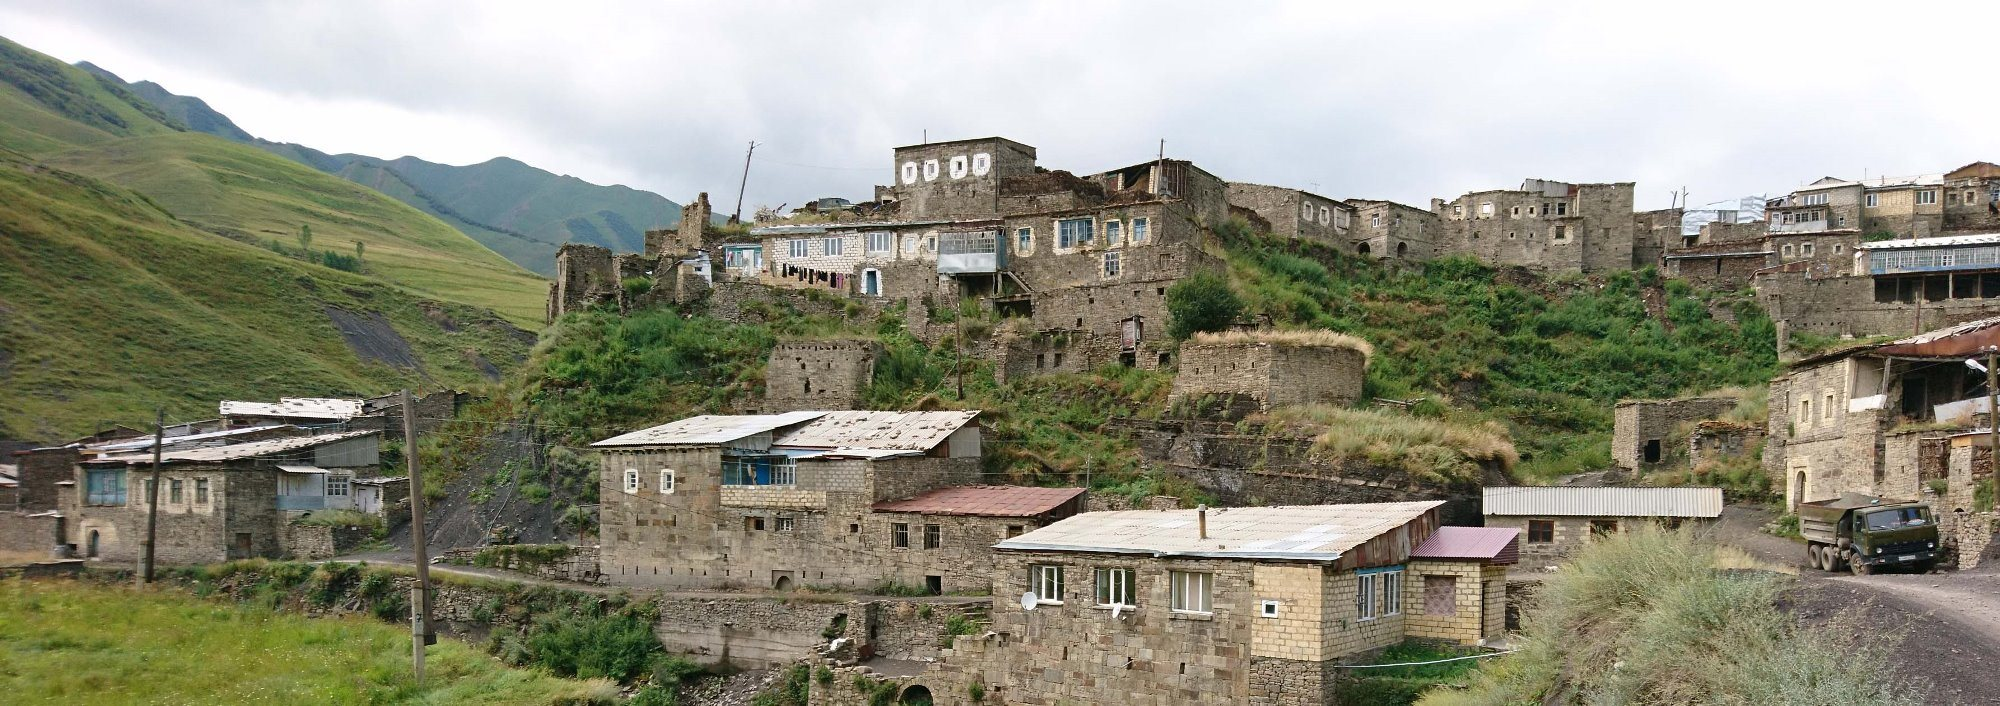 An old part of the Burkikhan village, Agul-speaking area, Daghestan